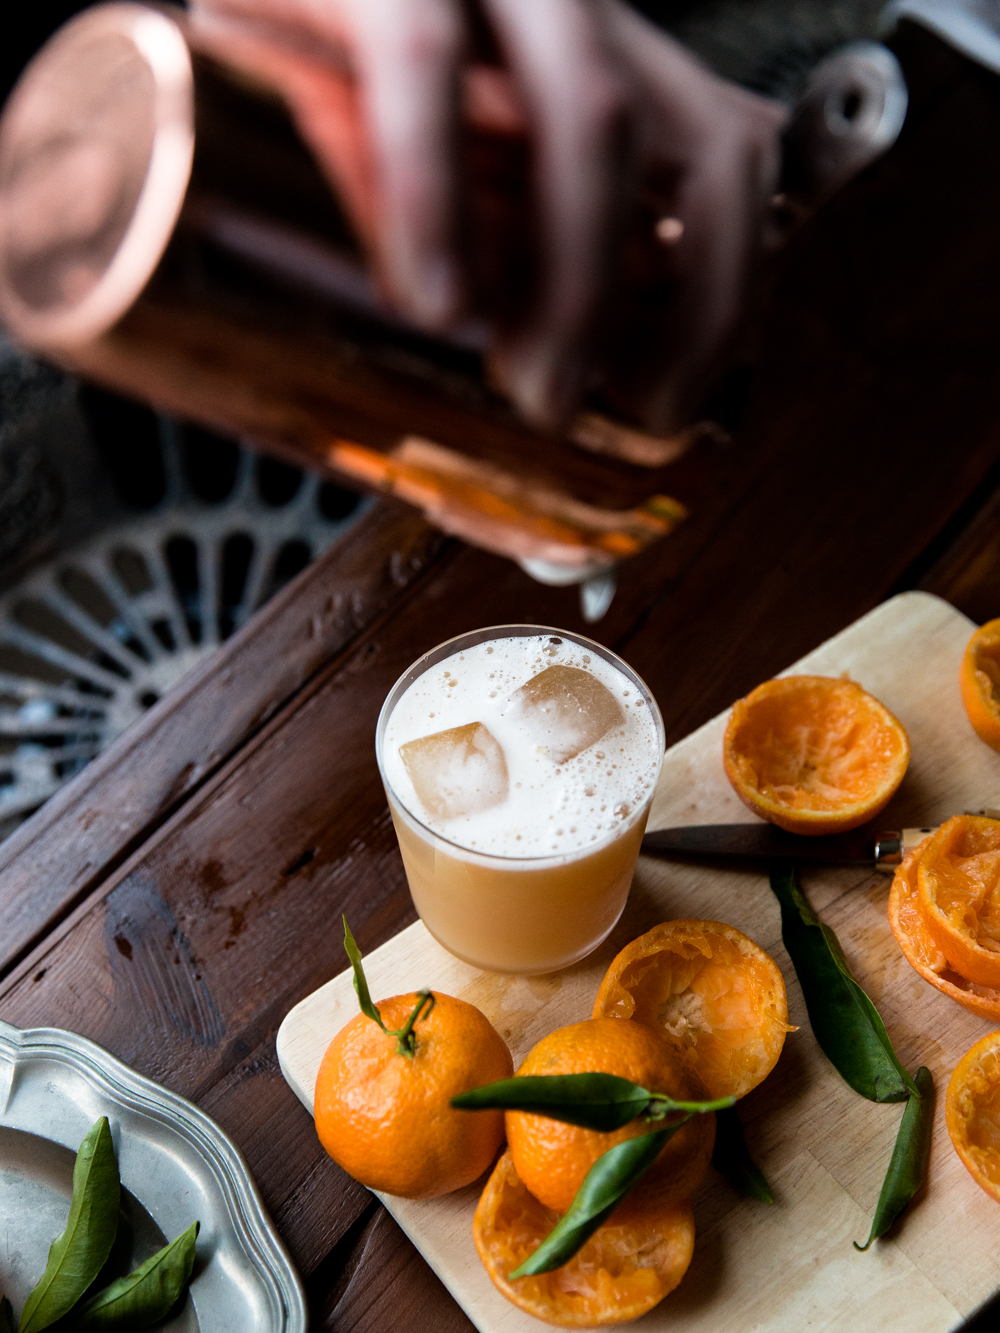 Clementine & Cinnamon Whiskey Sour